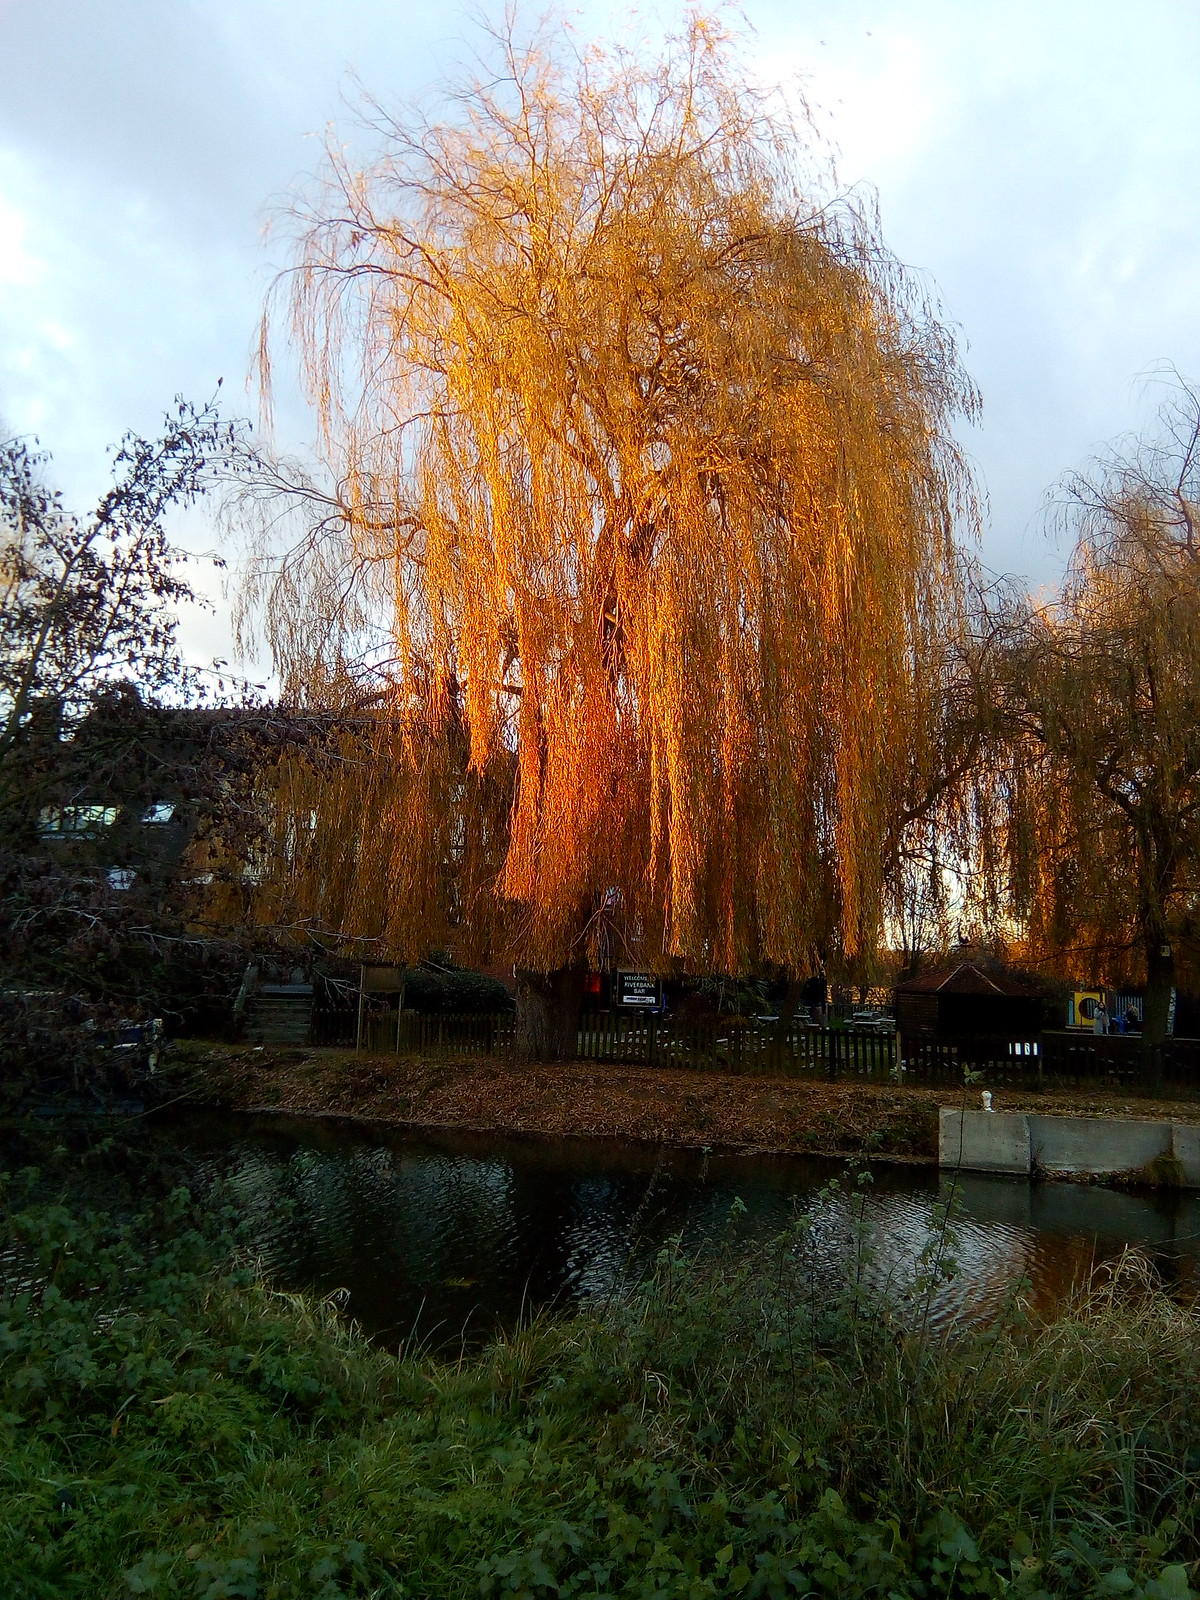 Willow Canopy over the River Stort